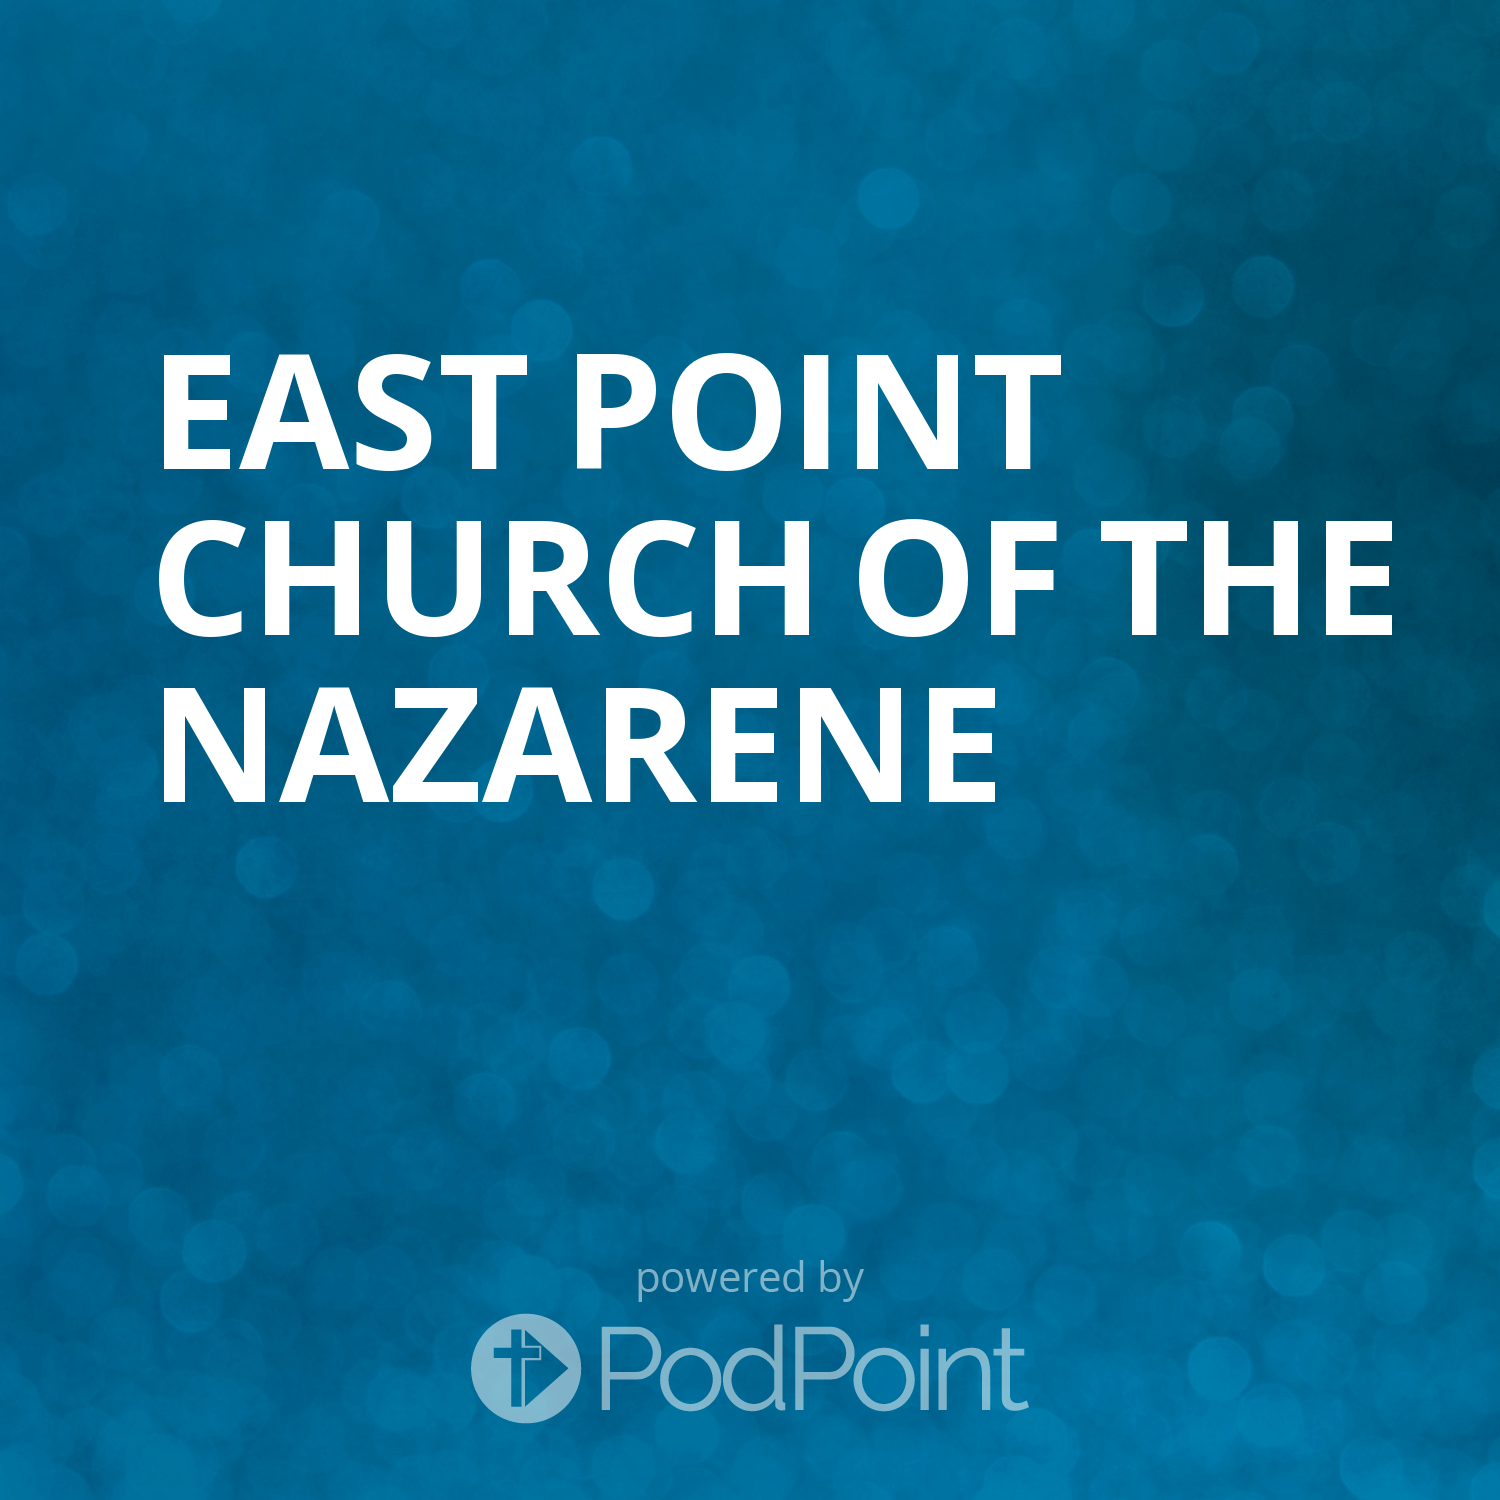 East Point Church of the Nazarene